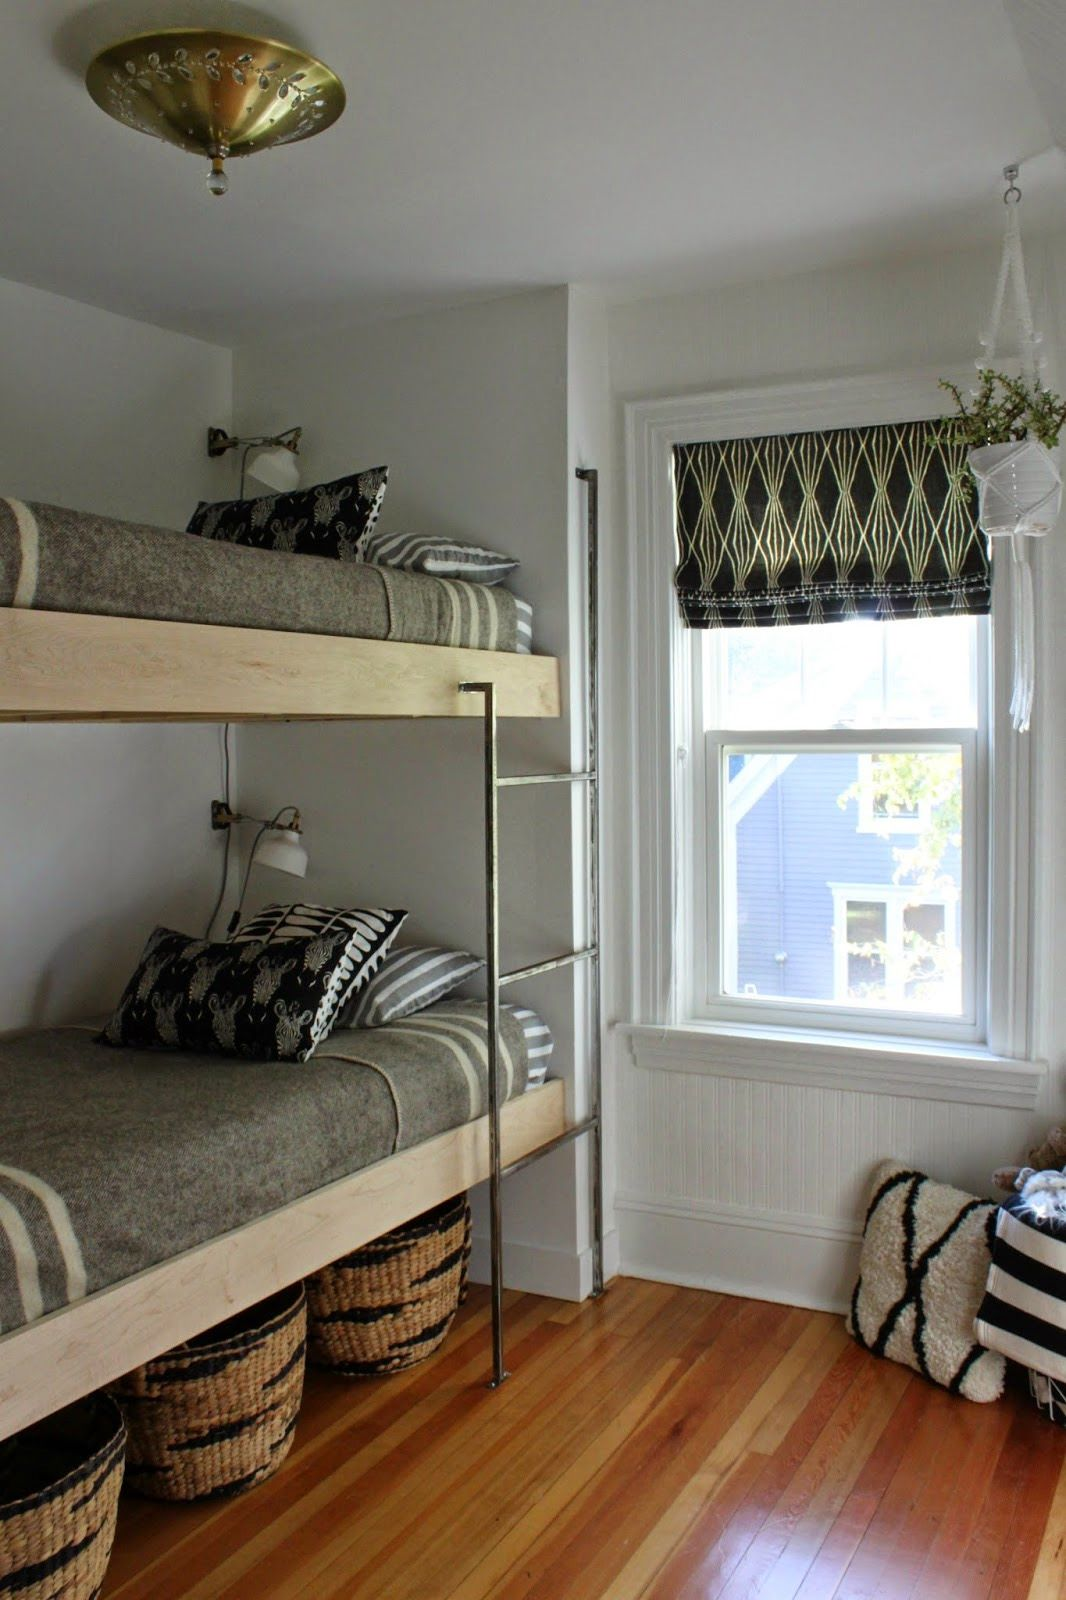 Best Slumber By U Relish Farm Beds For Small Rooms Diy Bunk 400 x 300